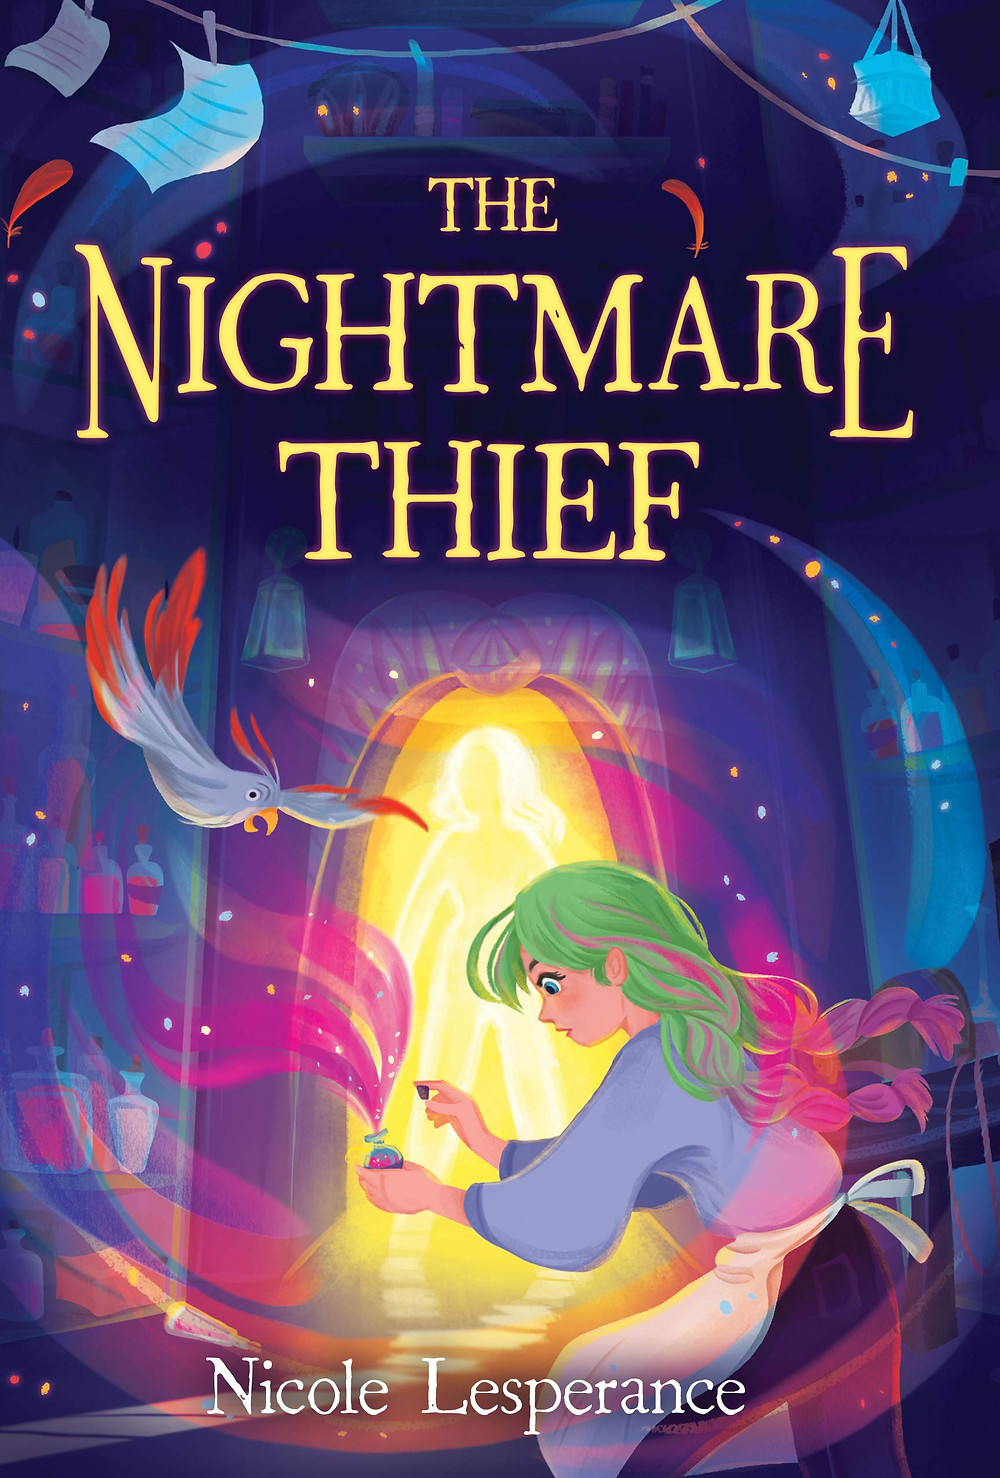 The Nightmare Thief by Nicole Lesperance | Top 5